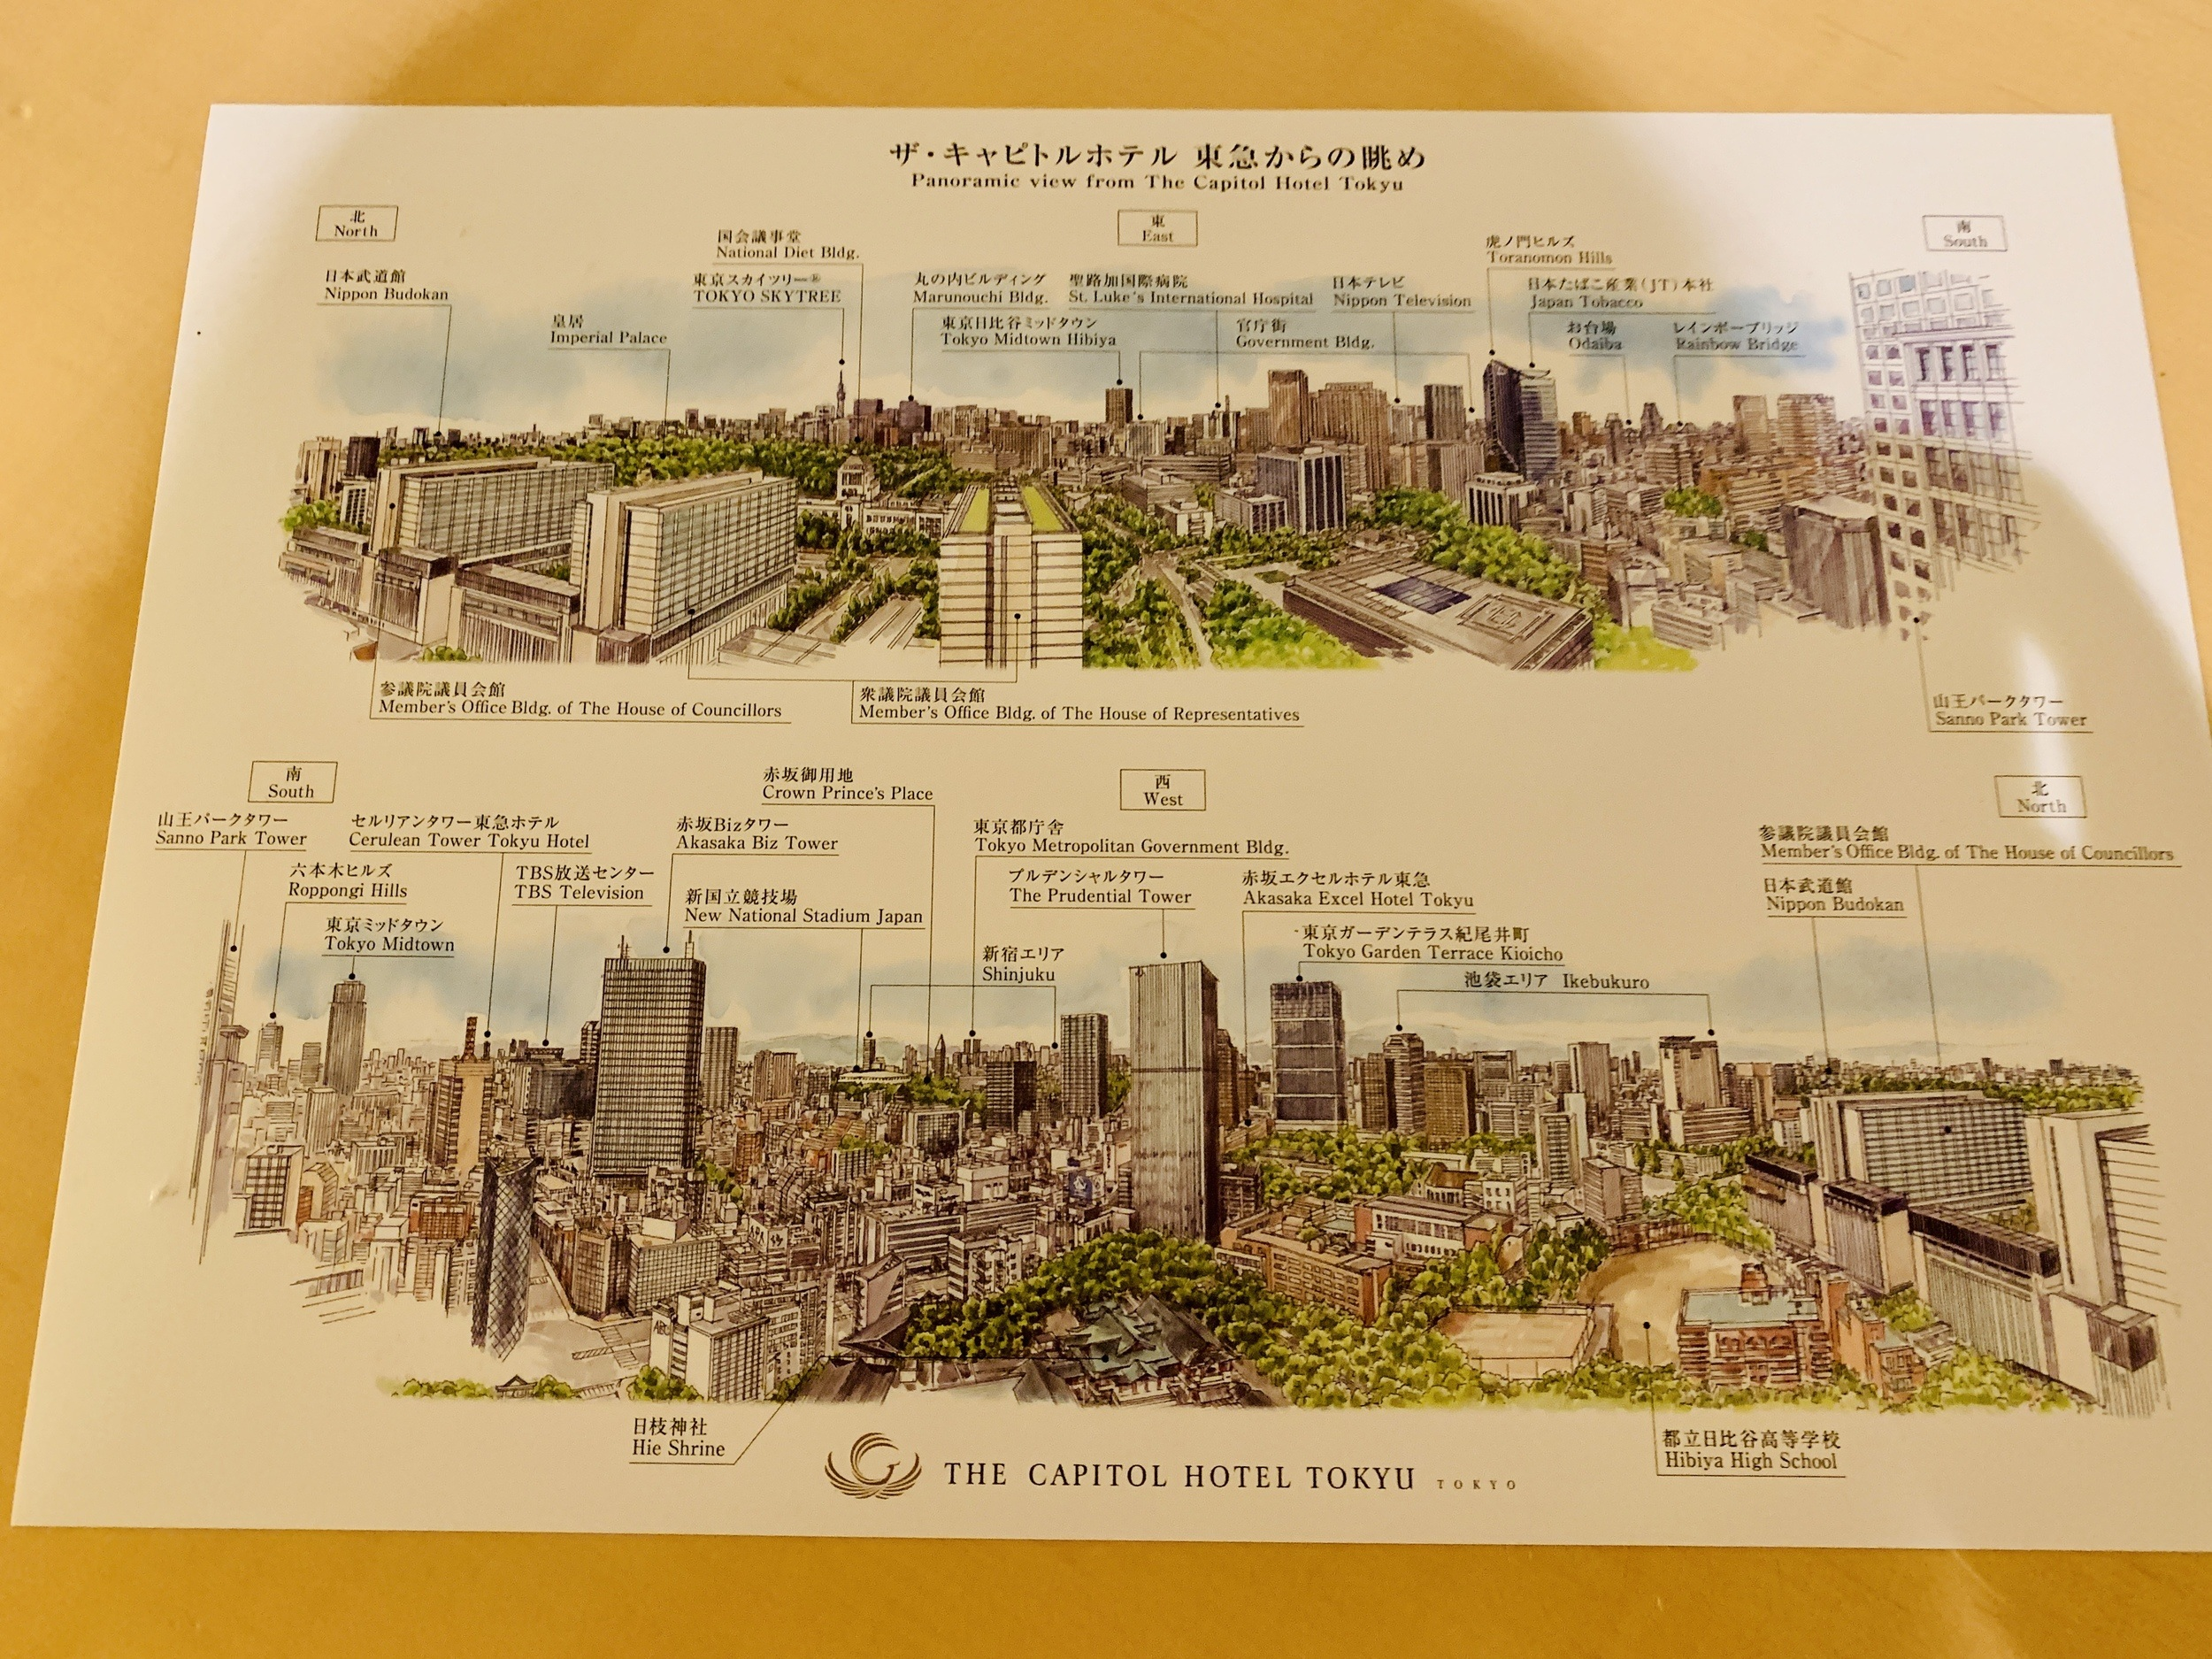 My Luxury Hotel Stay Experience with The Capitol Hotel Tokyu11